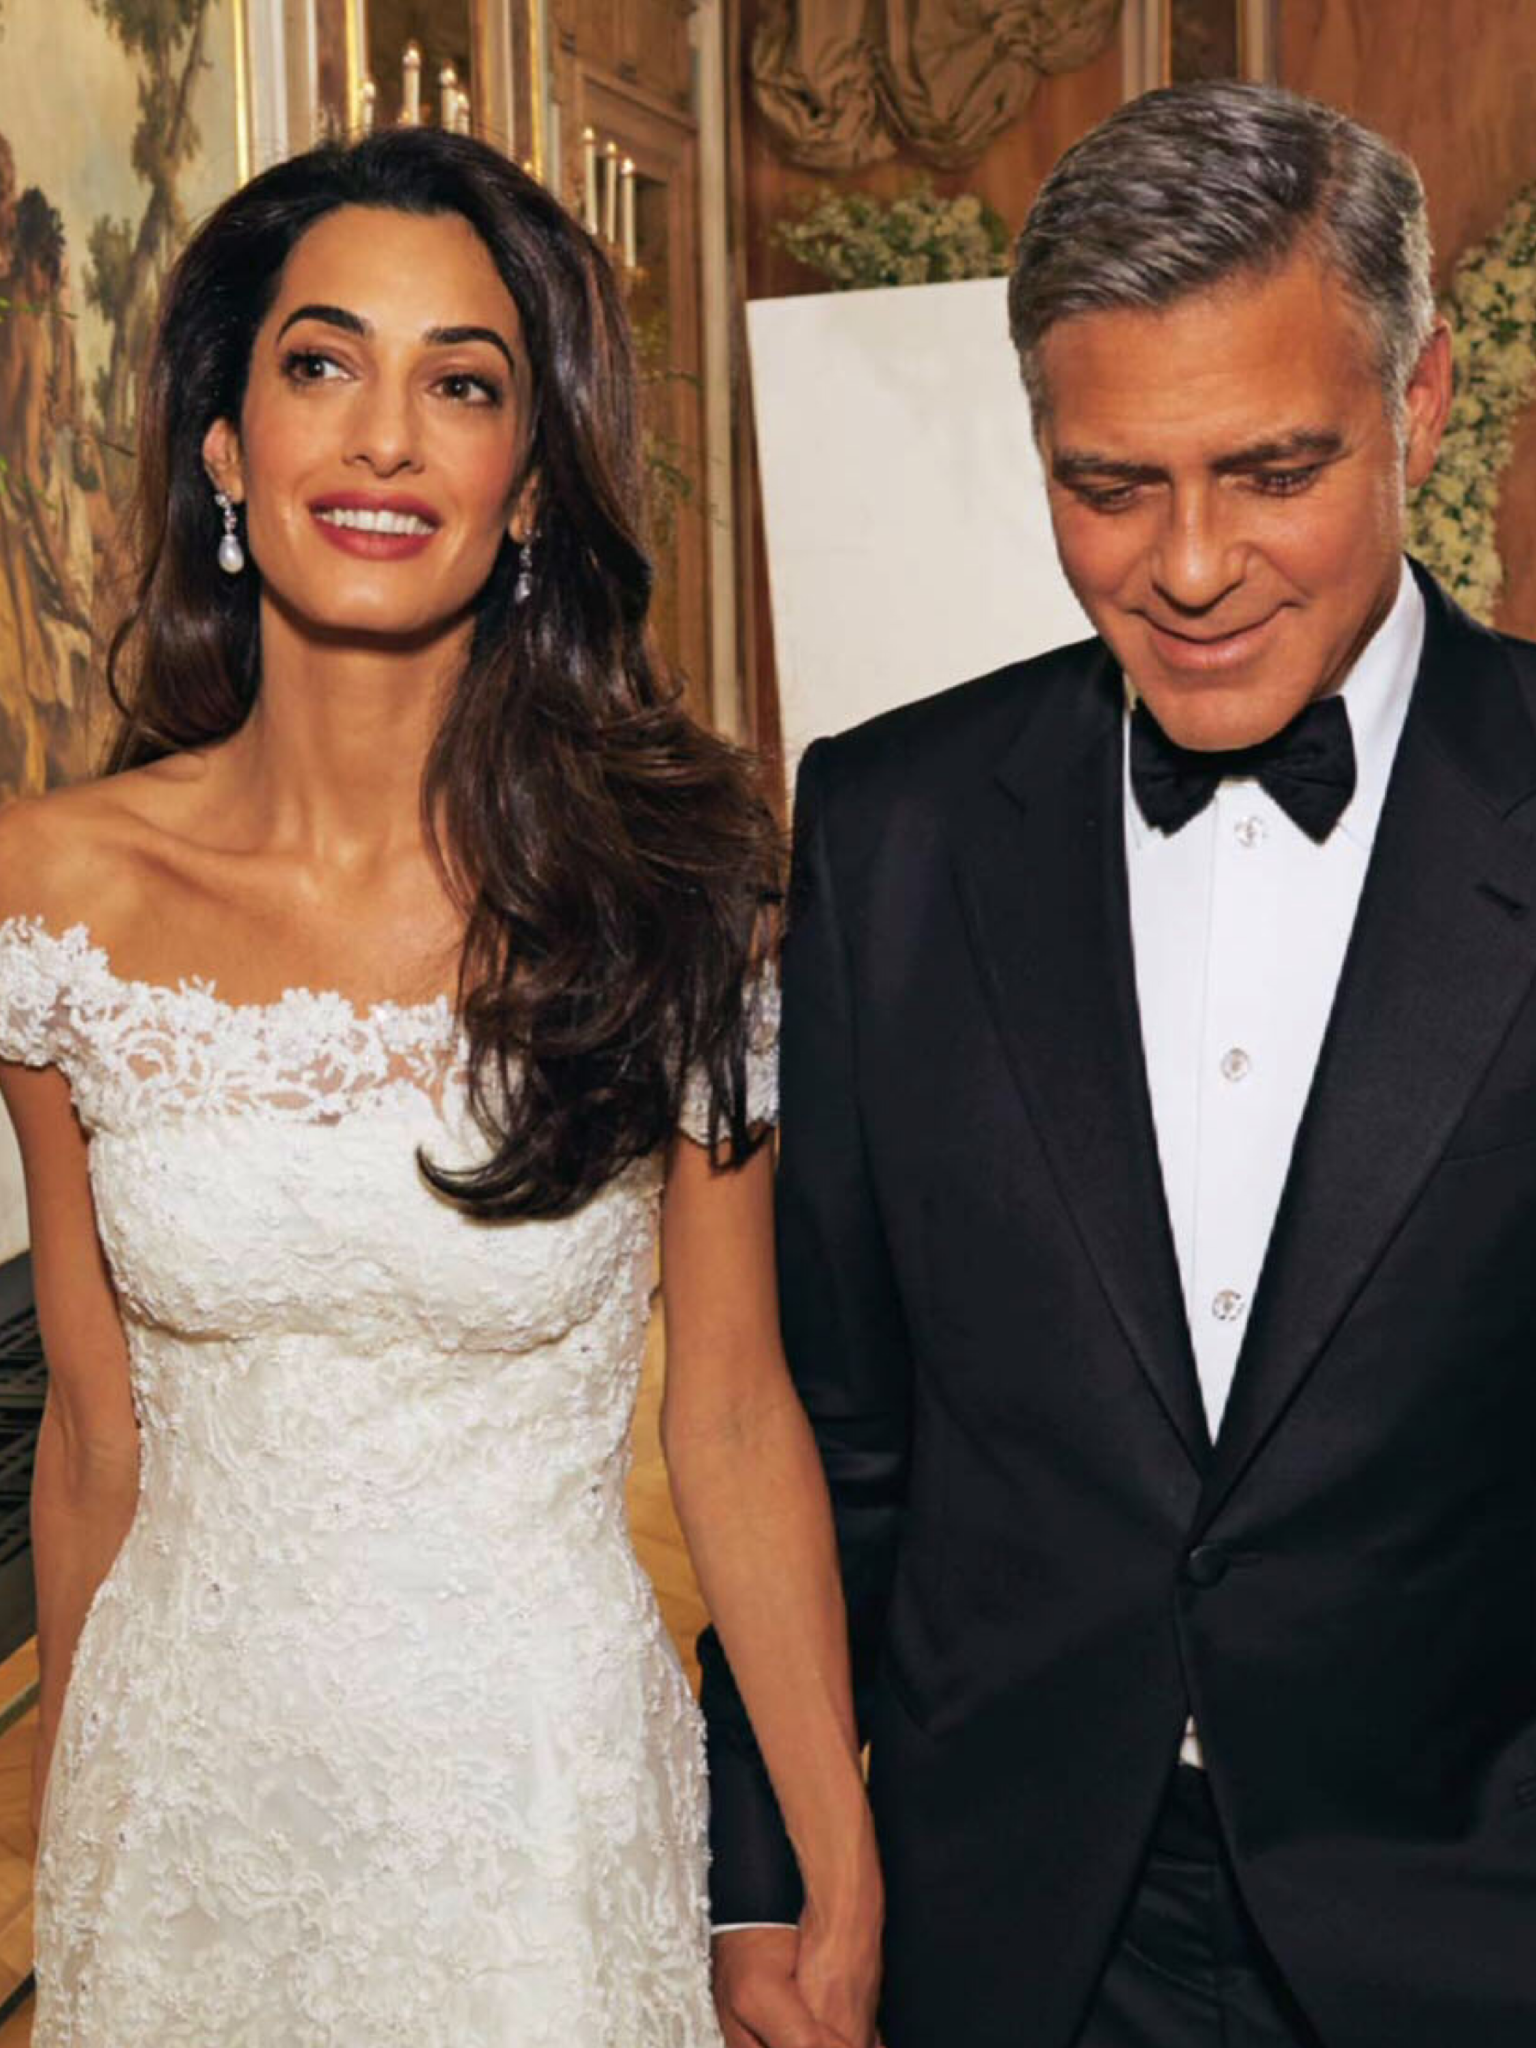 Amal And George Clooney At Their 2014 Italian Wedding